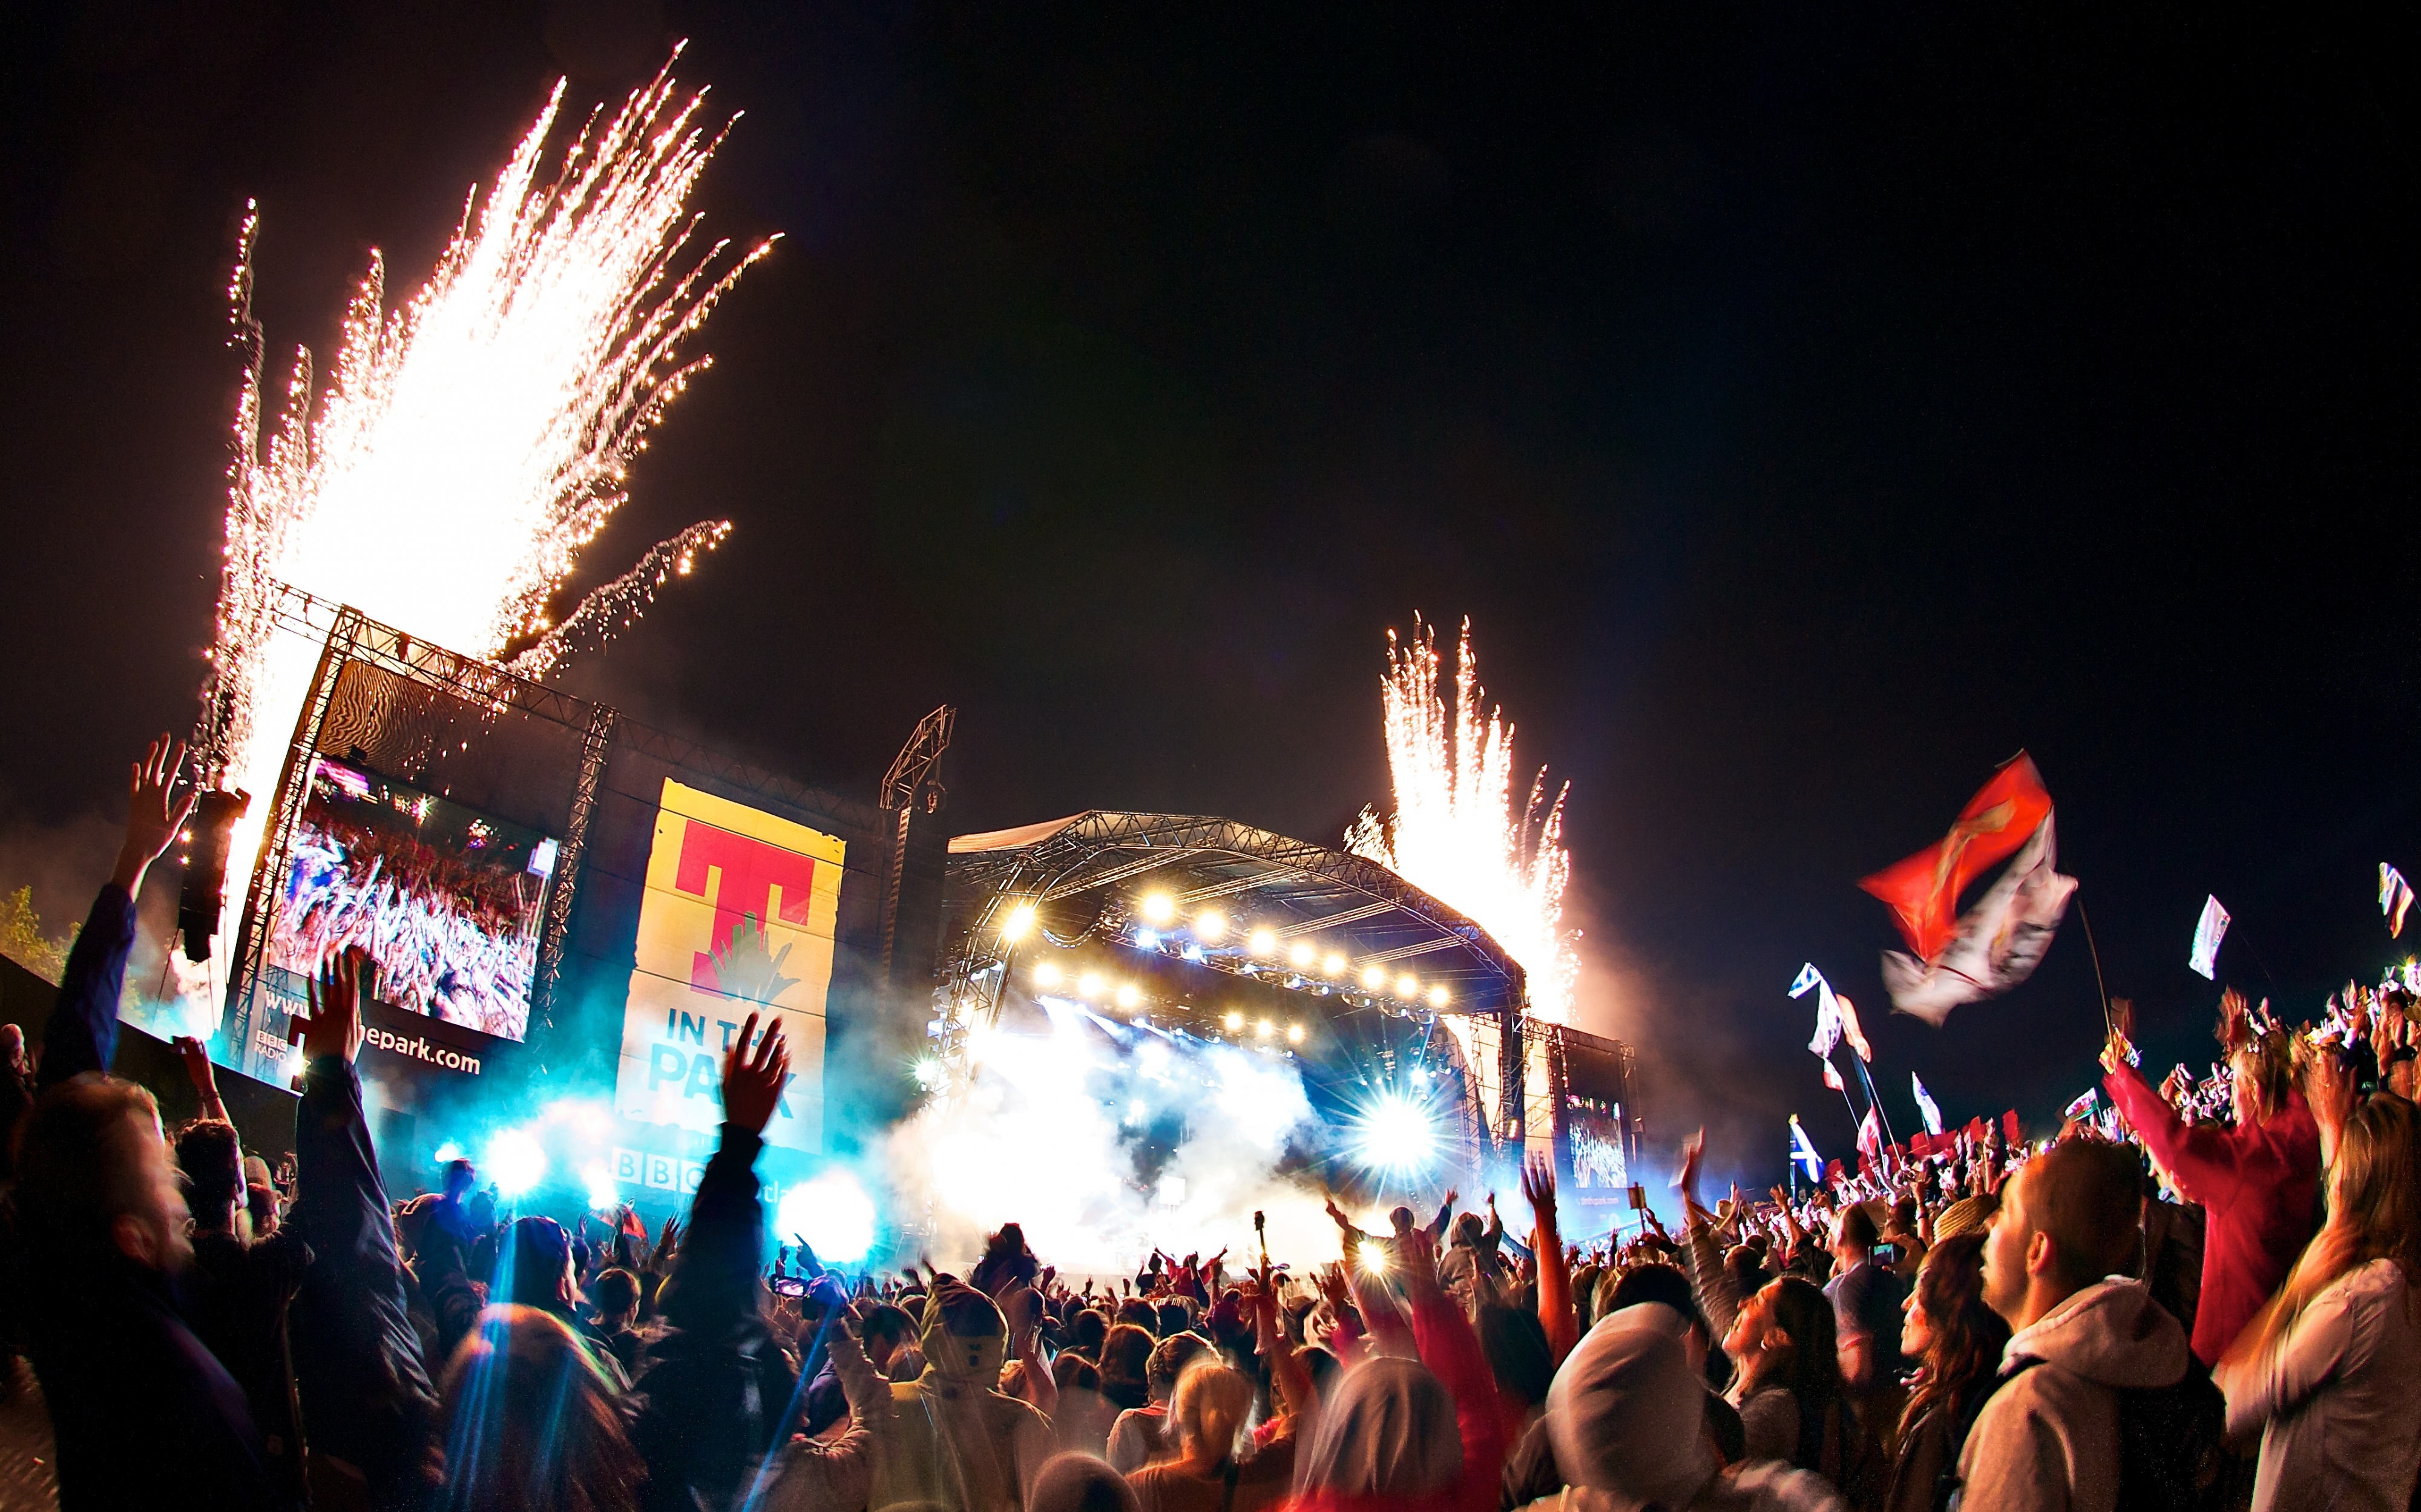 Top 10 ways to stay safe at T in the Park 2016